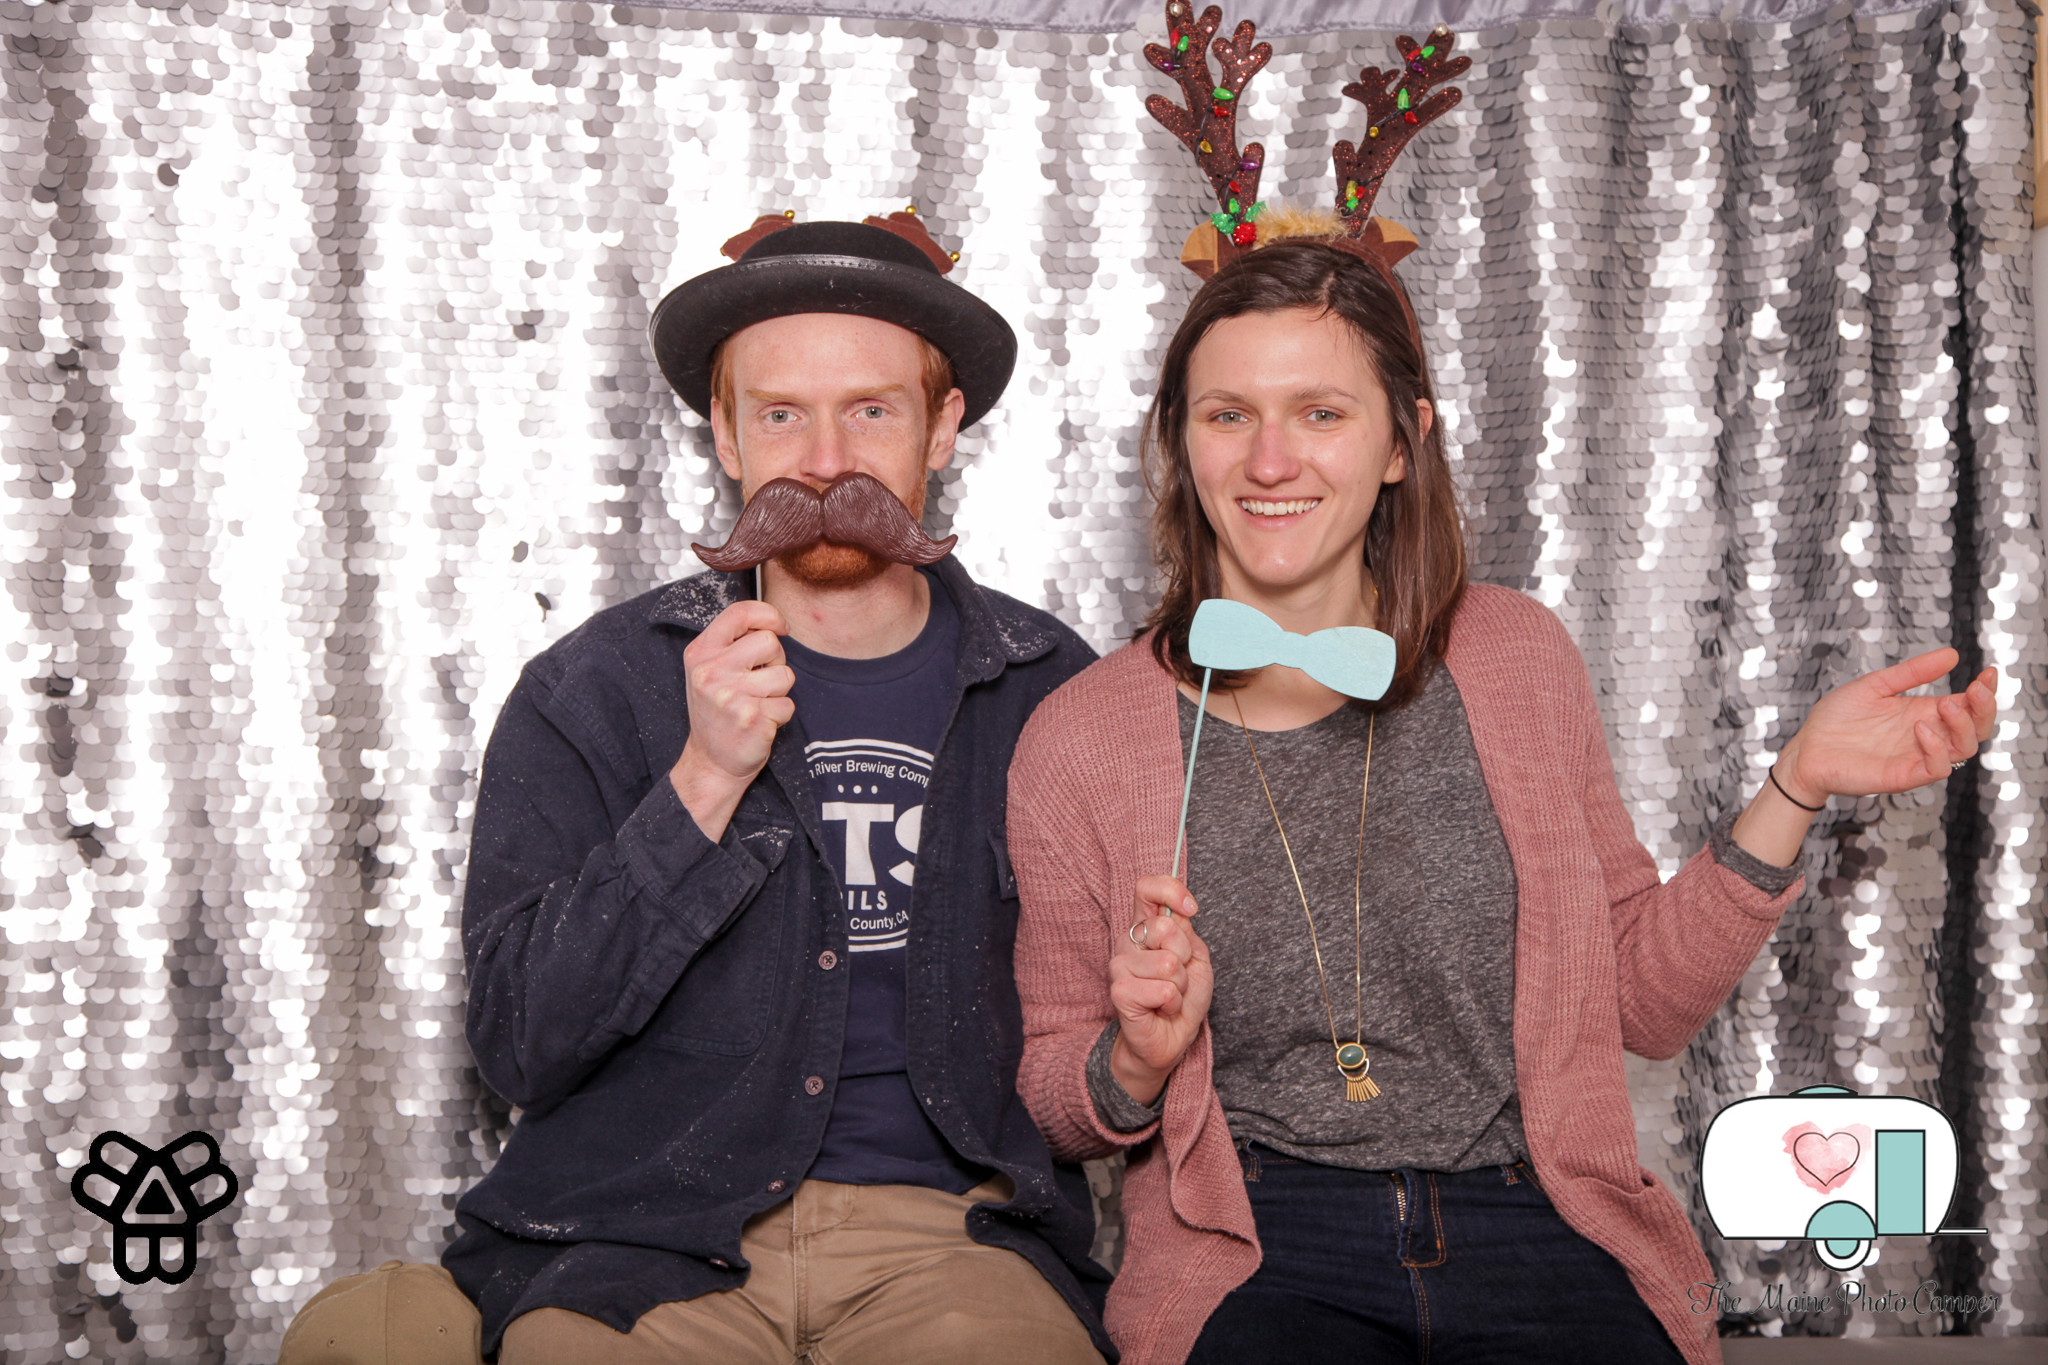 Bissell Brothers Holiday Party 2016, The Maine Photo Camper, Maine Tinker Photography -7.jpg